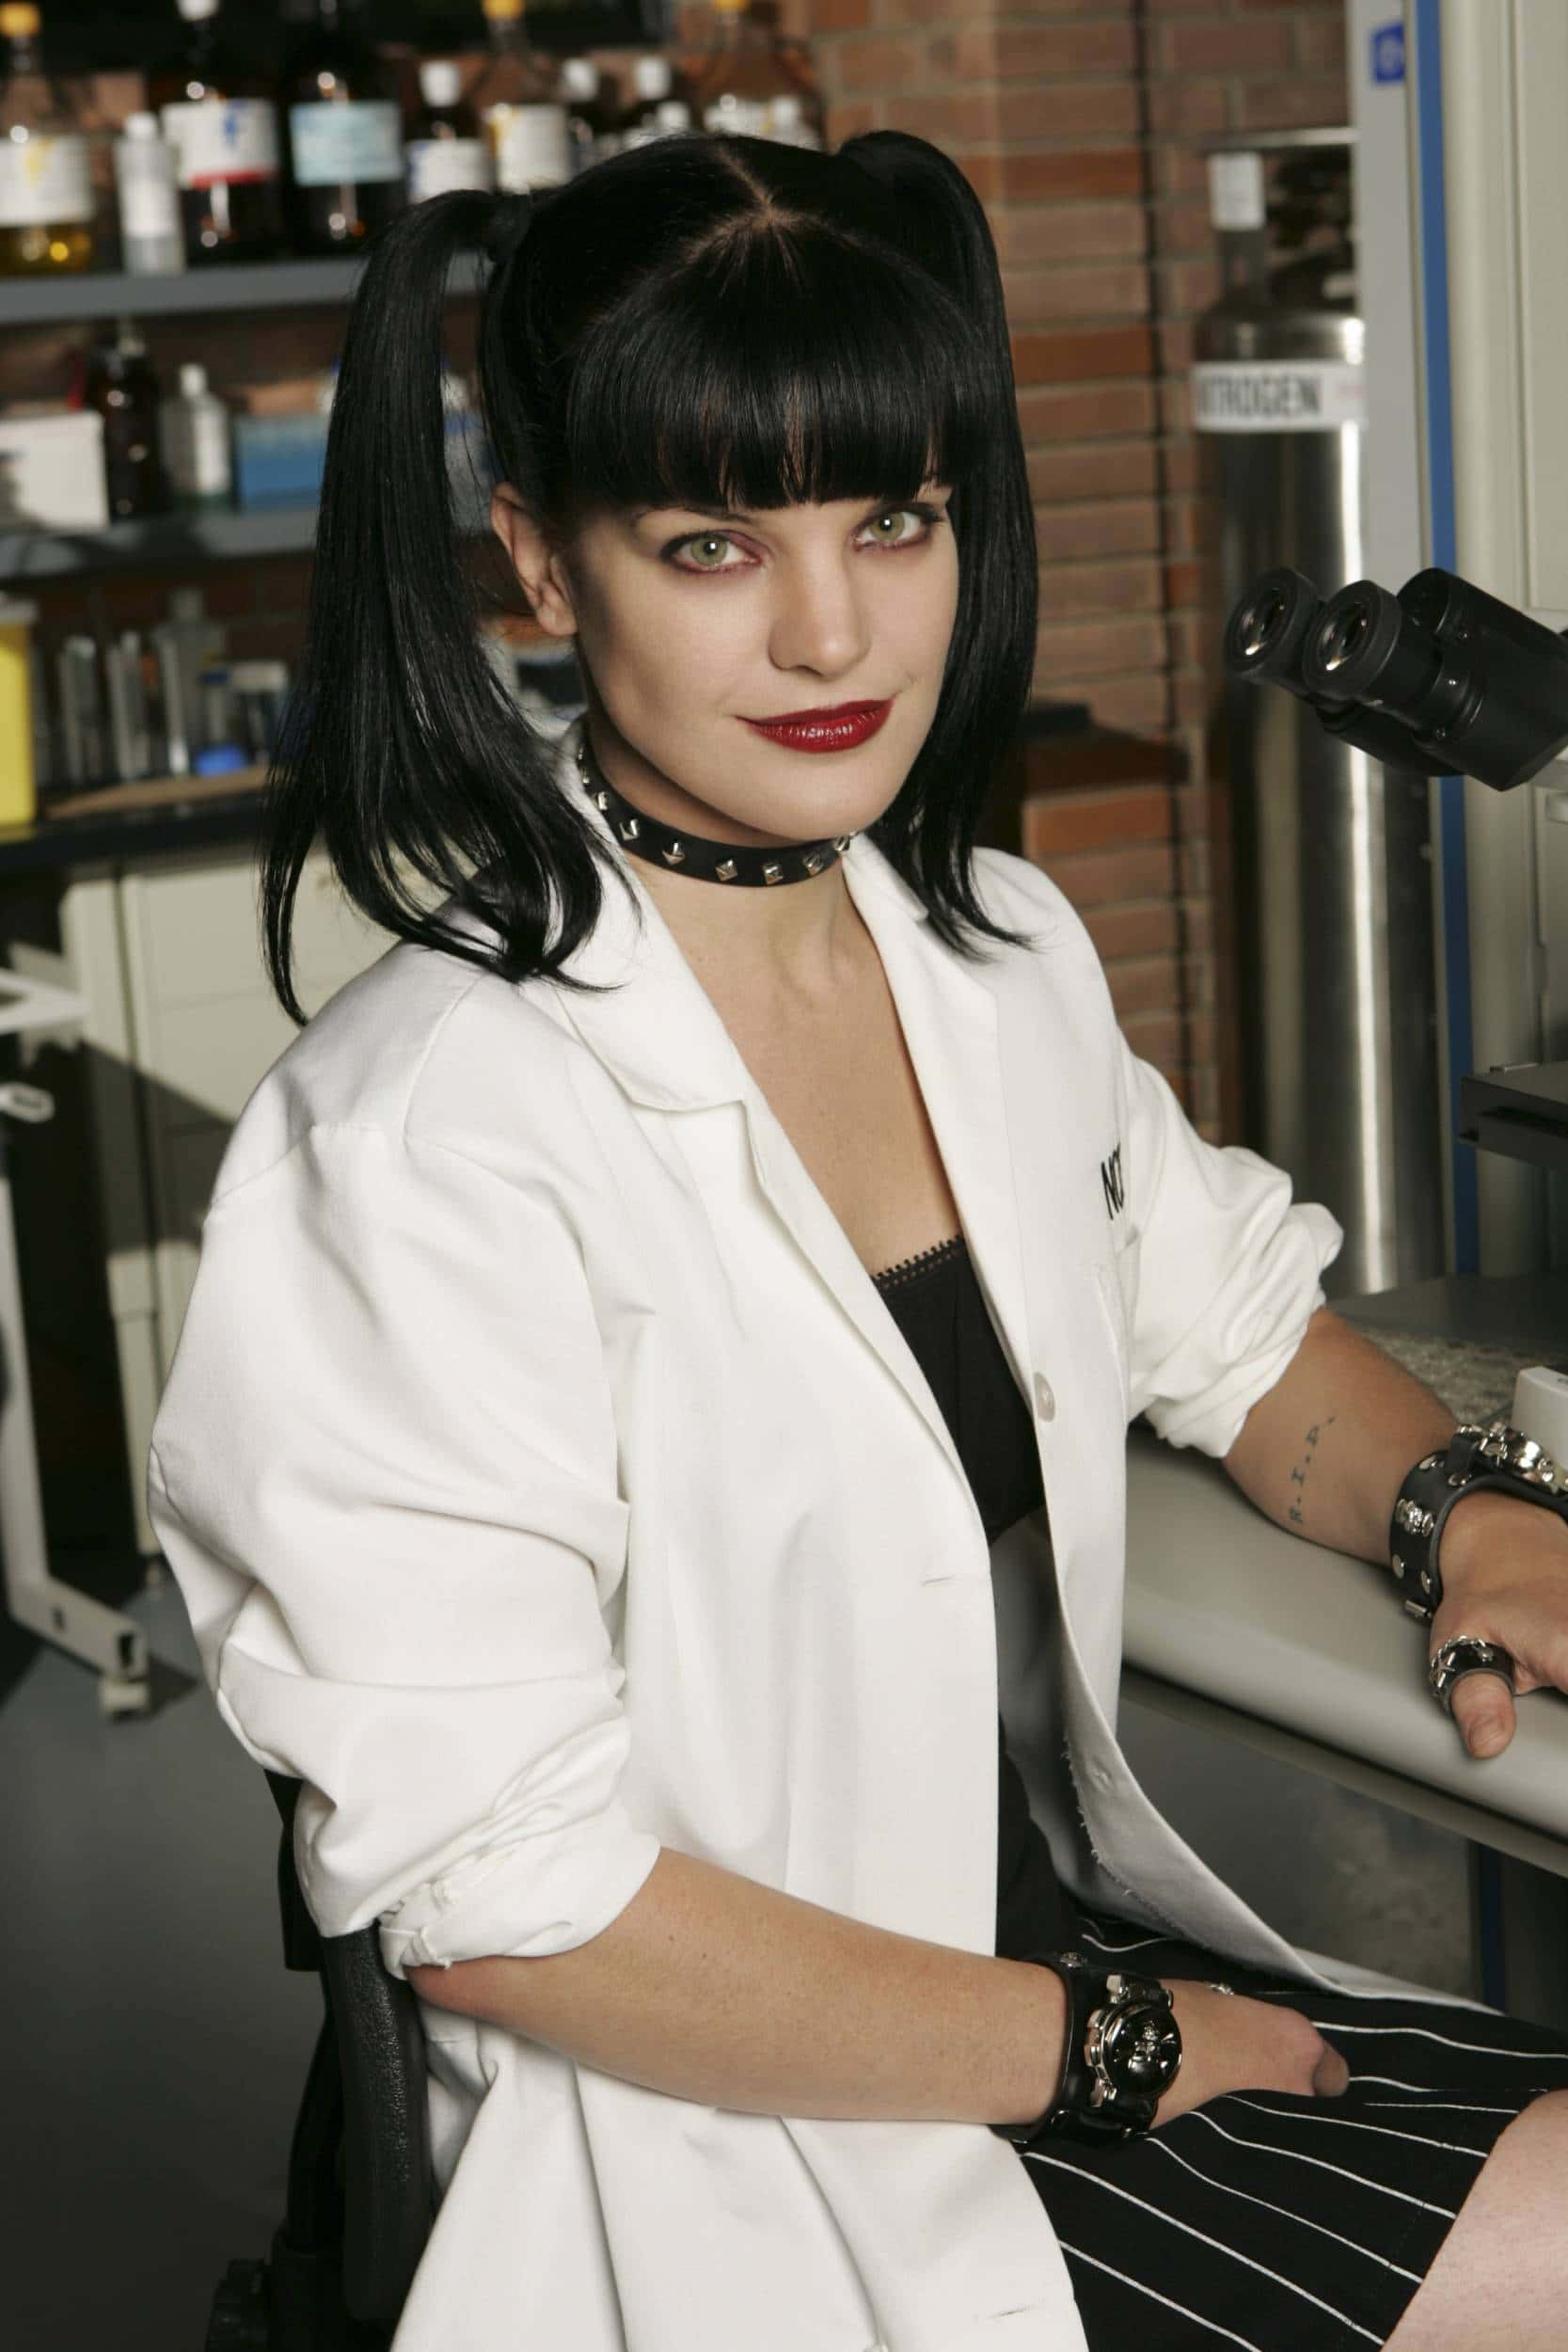 Perrette as Abby in NCIS (Twitter)